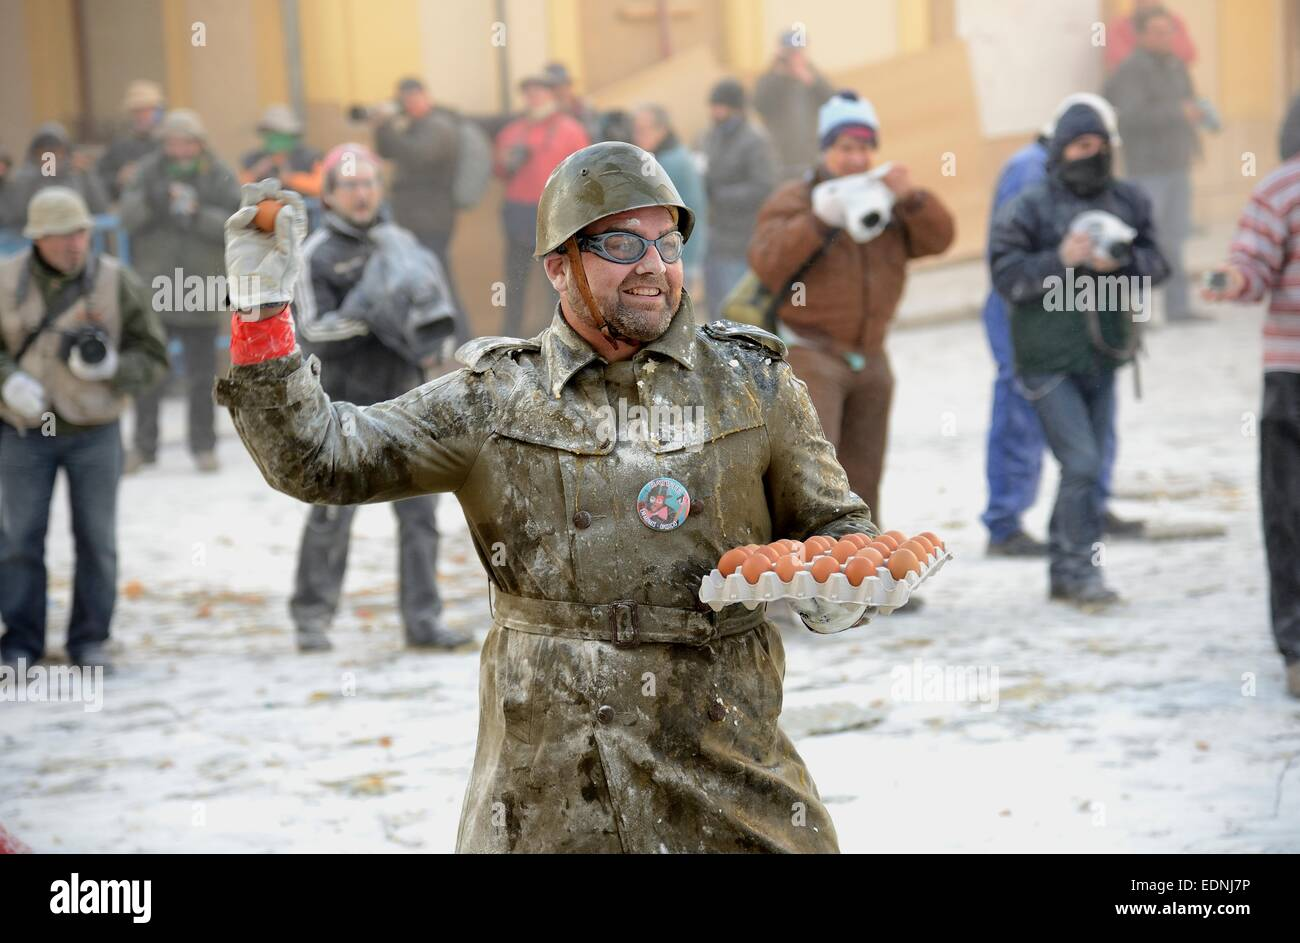 Els Enfarinats flour fight, rebels, armed with flour, eggs and firecrackers, take over the regiment of the city - Stock Image